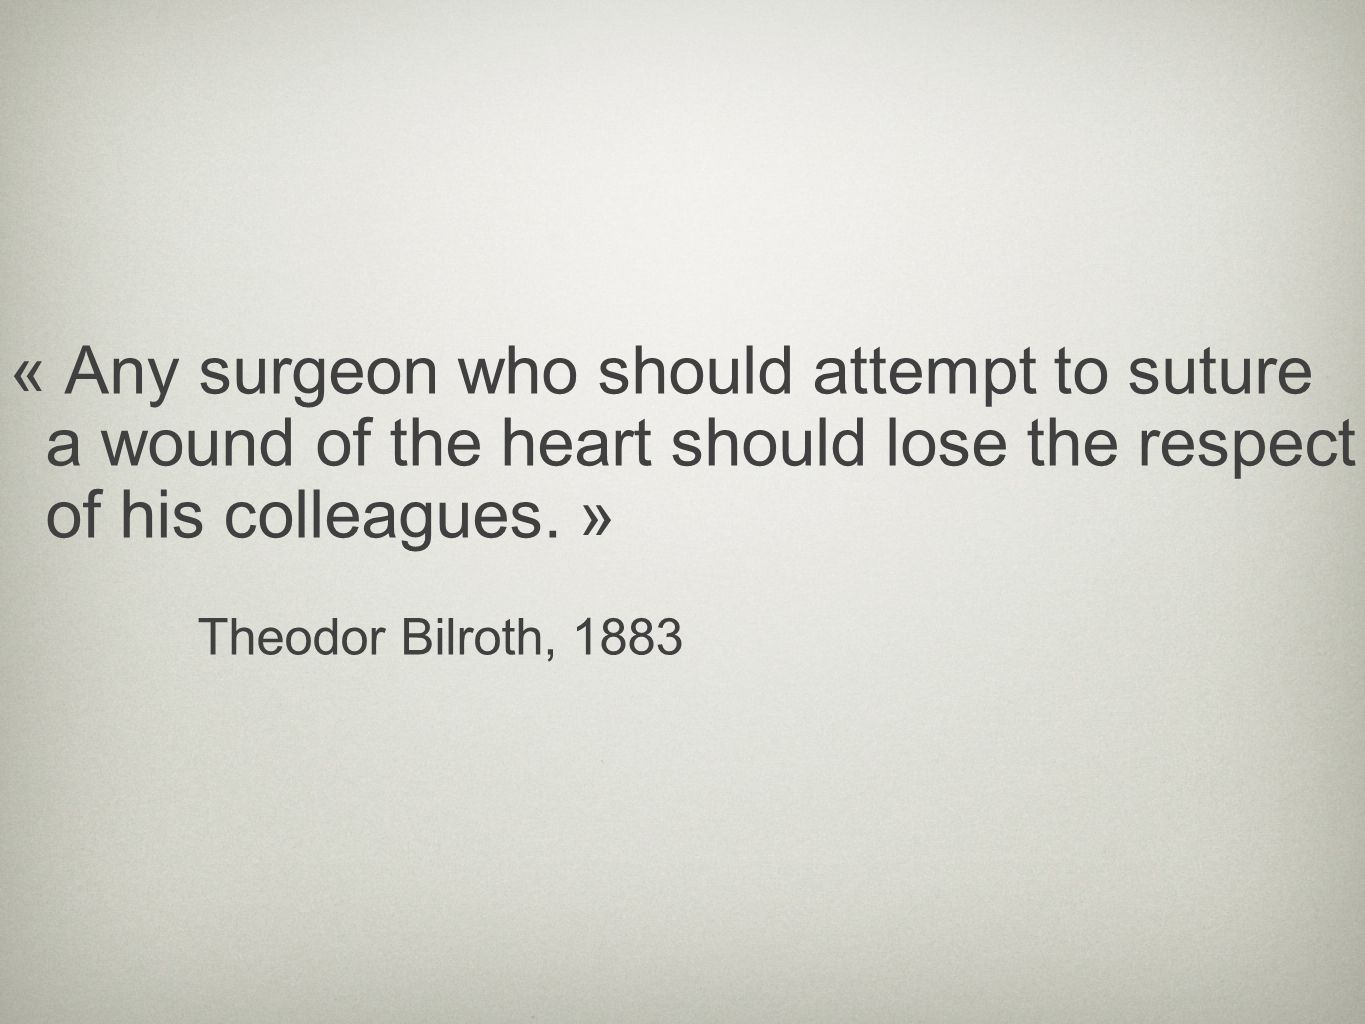 « Any surgeon who should attempt to suture a wound of the heart should lose the respect of his colleagues. »